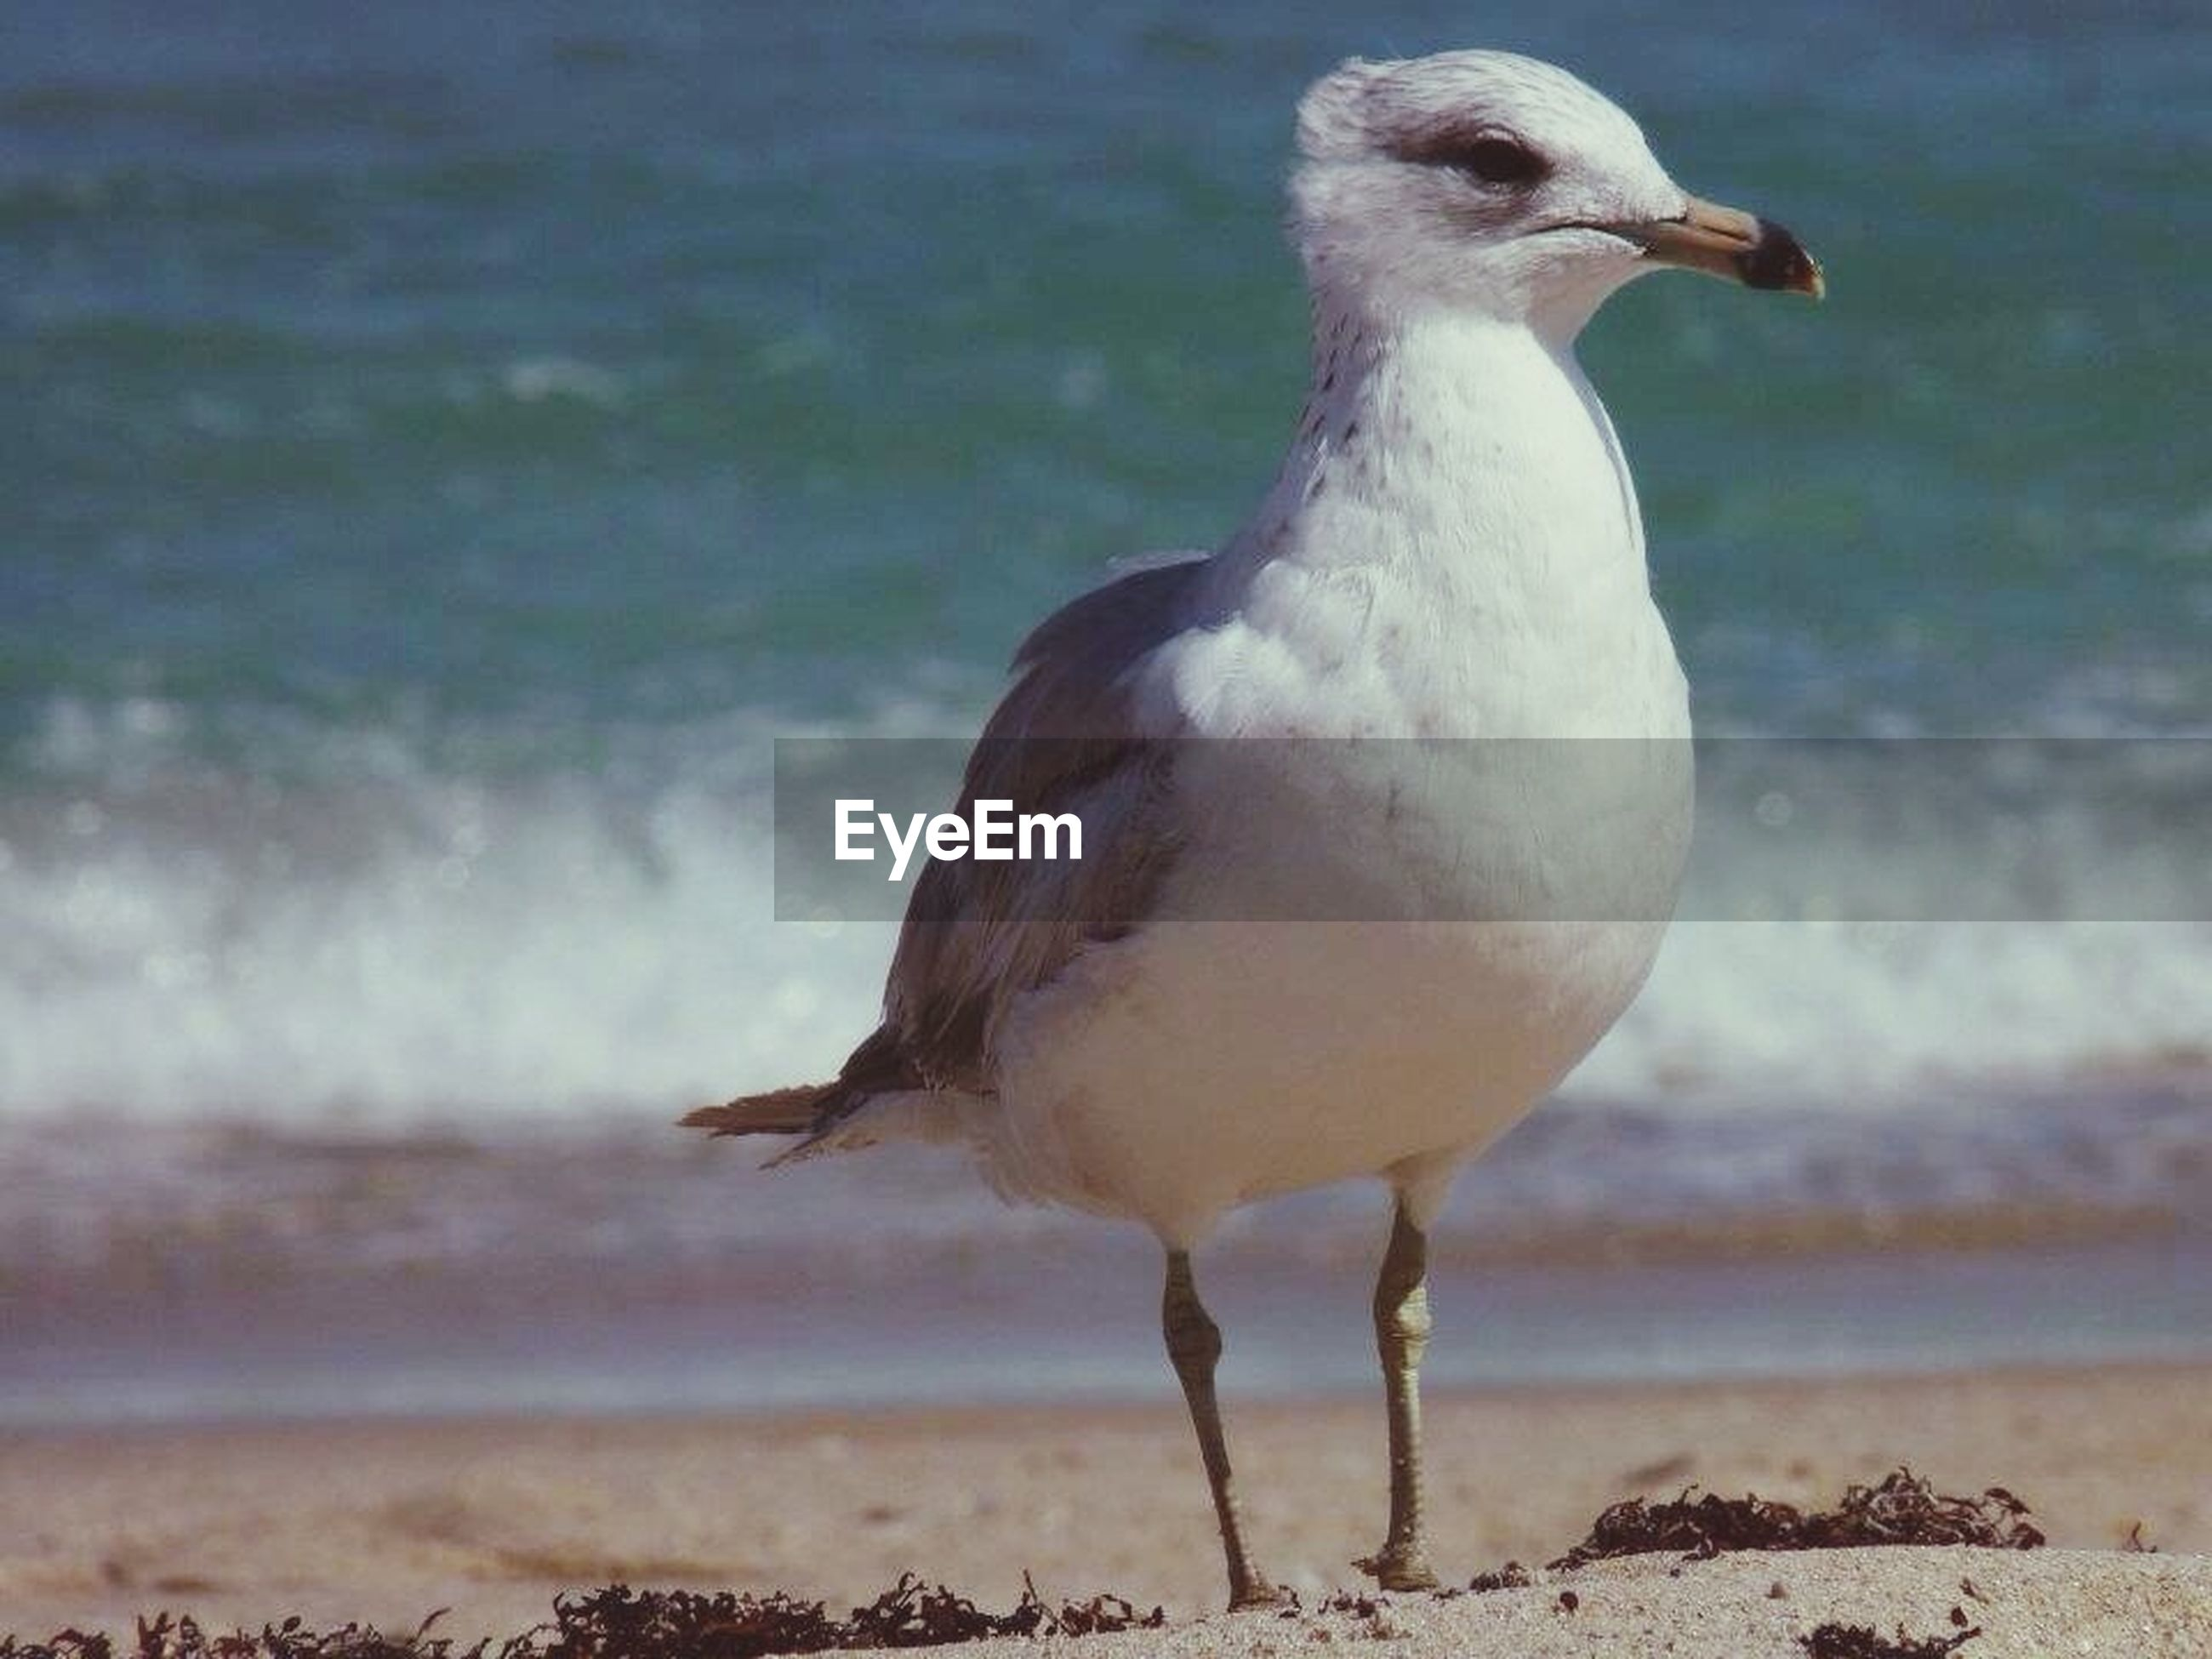 bird, animal themes, animals in the wild, one animal, wildlife, water, seagull, beak, focus on foreground, nature, close-up, lake, perching, outdoors, beauty in nature, full length, day, side view, sea, no people